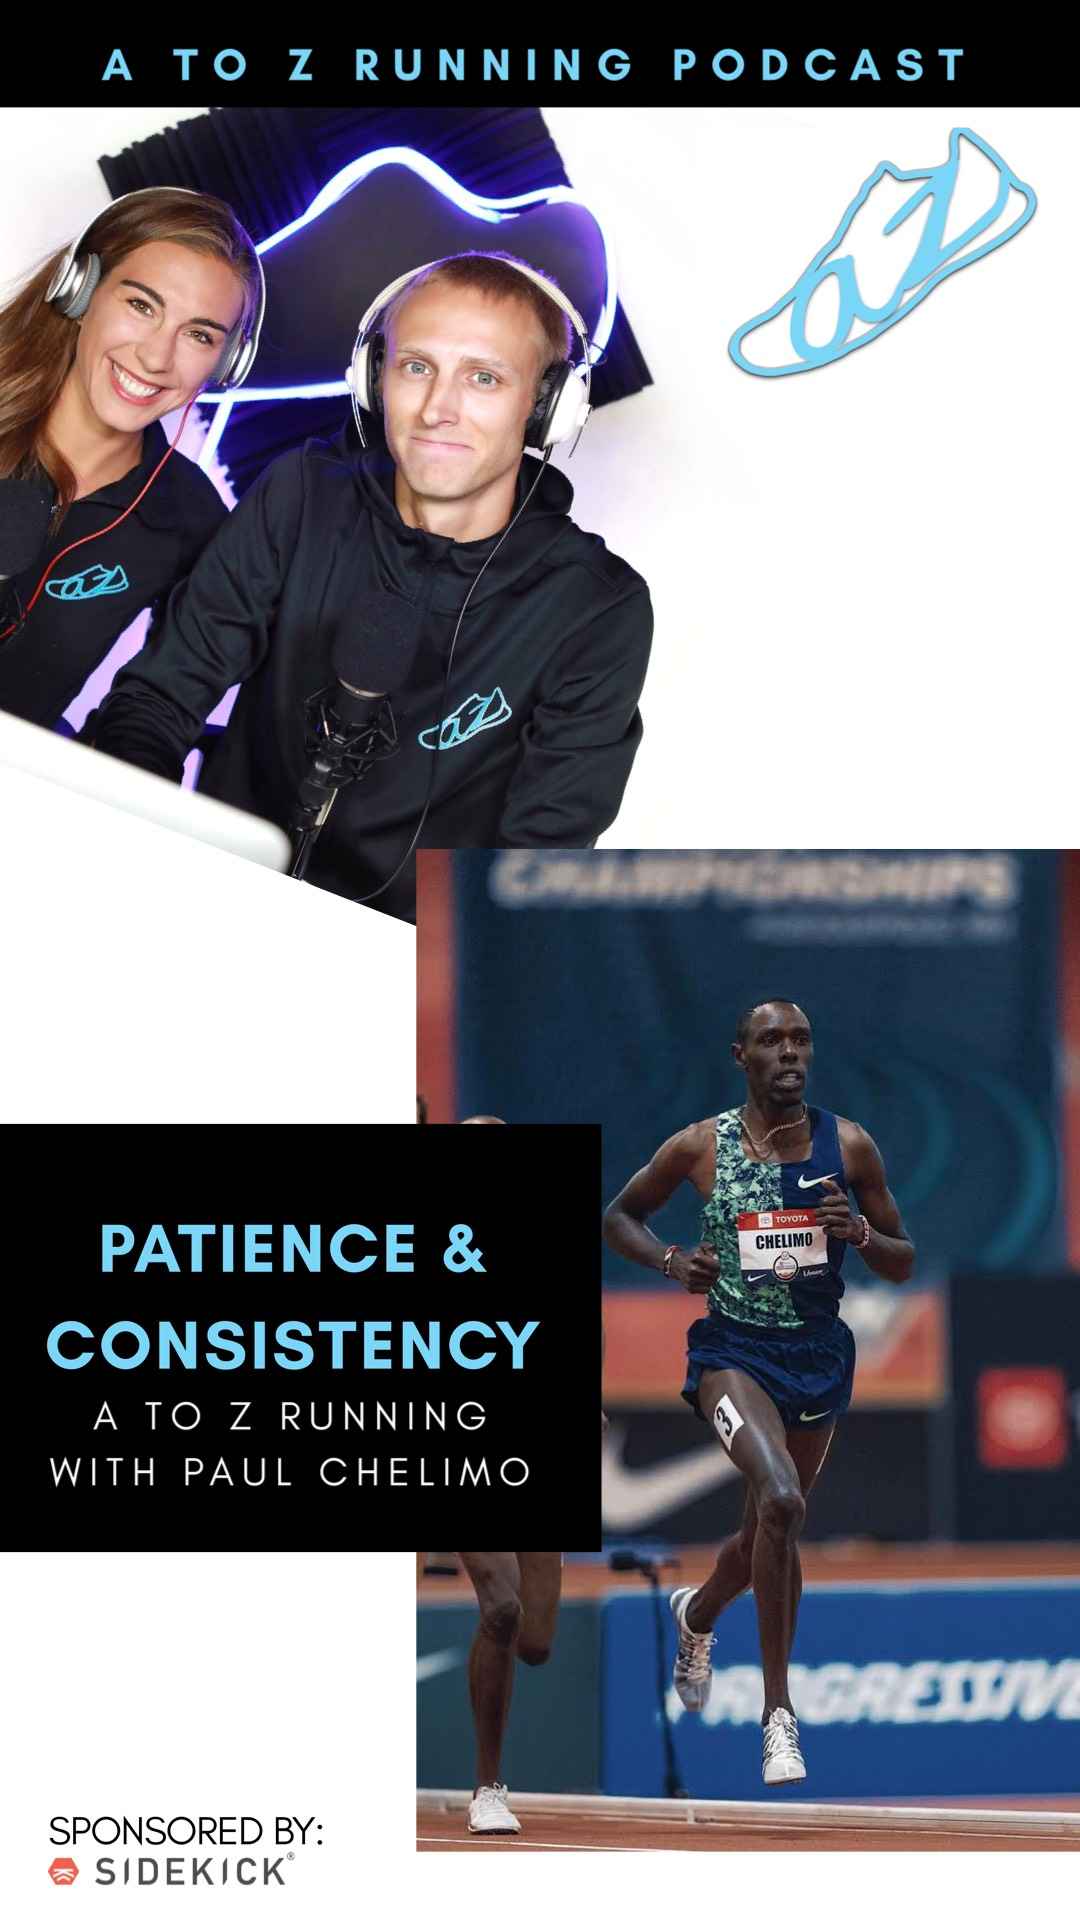 Paul Chelimo on the A to Z Running Podcast